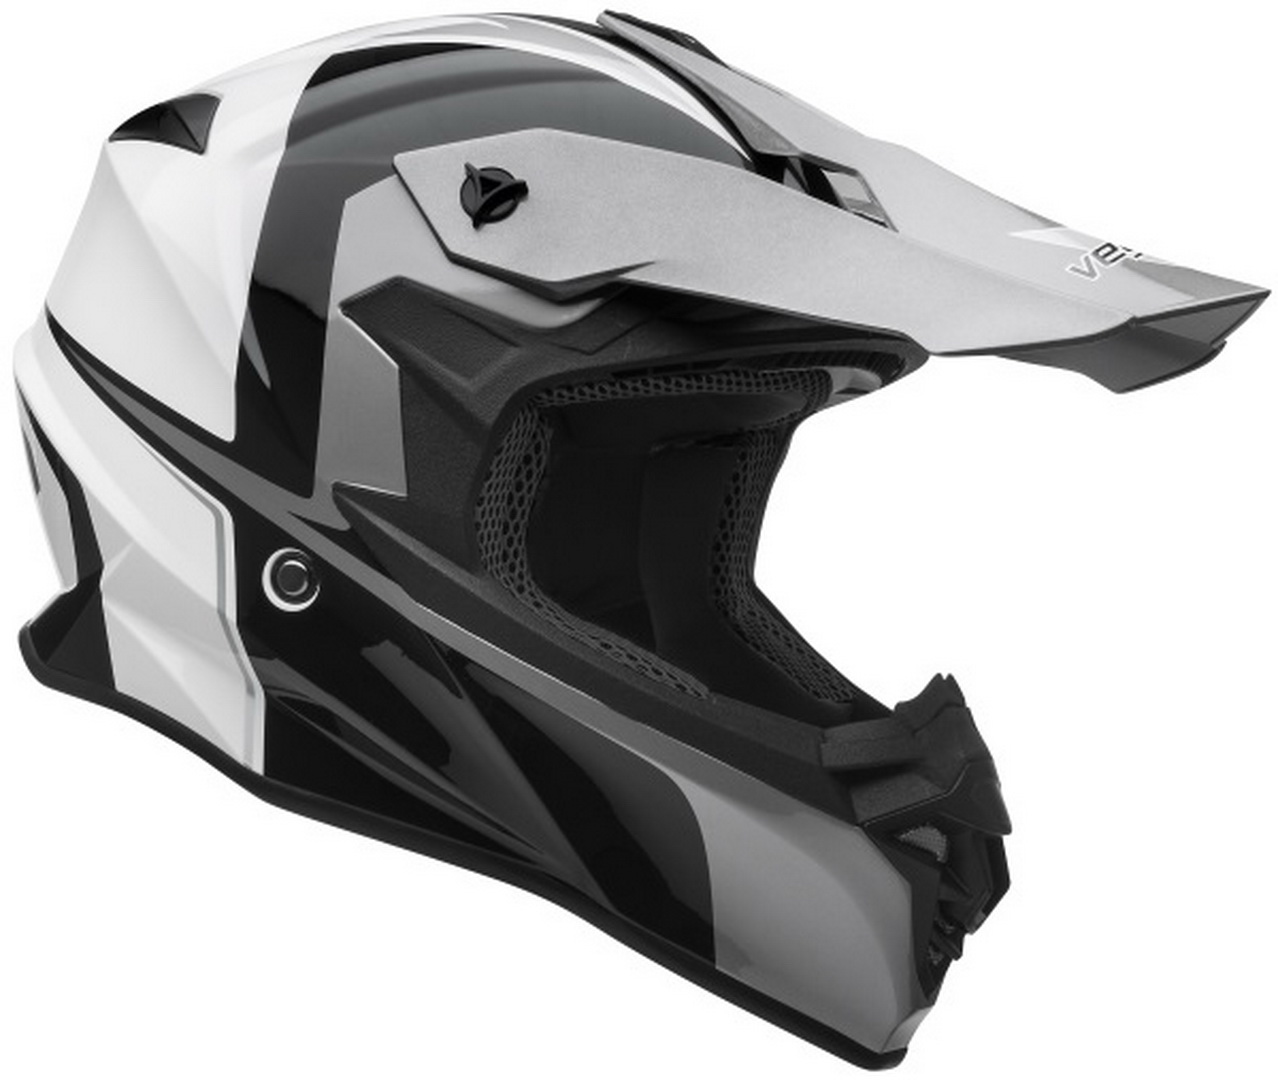 Casque de motocross nouvelle collection VF1 Off Road Stinger Black Graphic